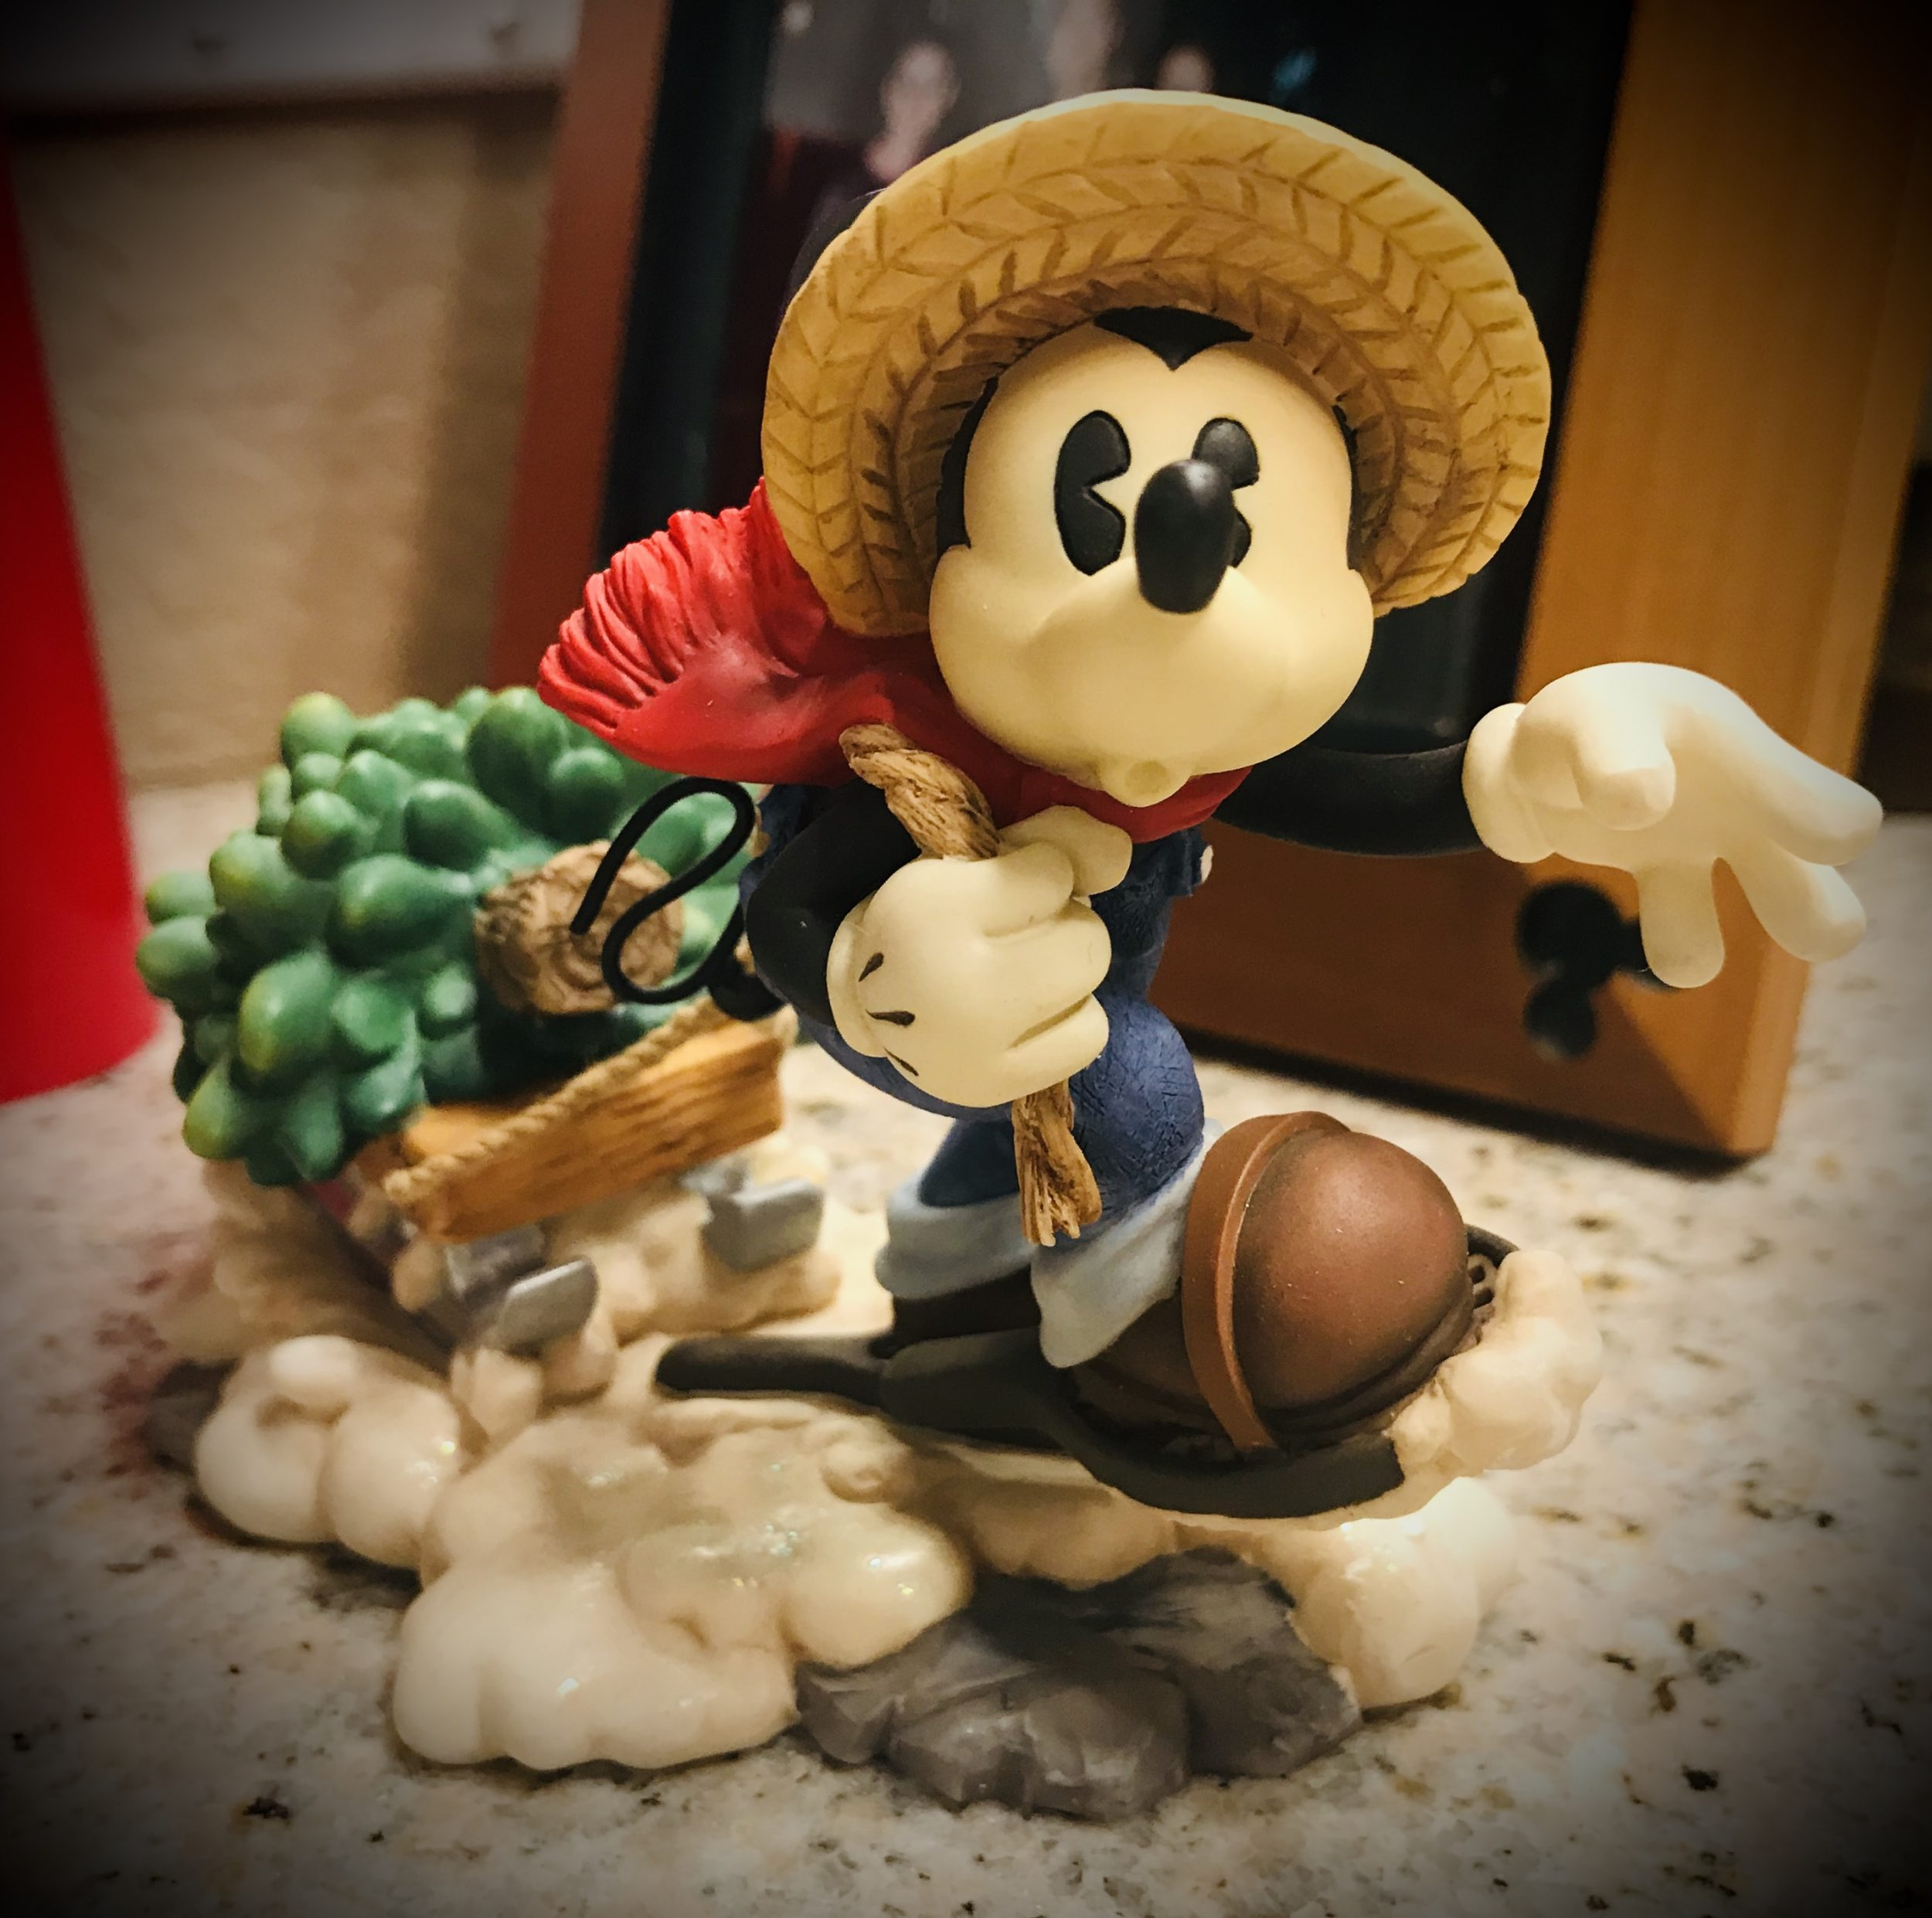 Mickey Figurine pulling a Christmas tree